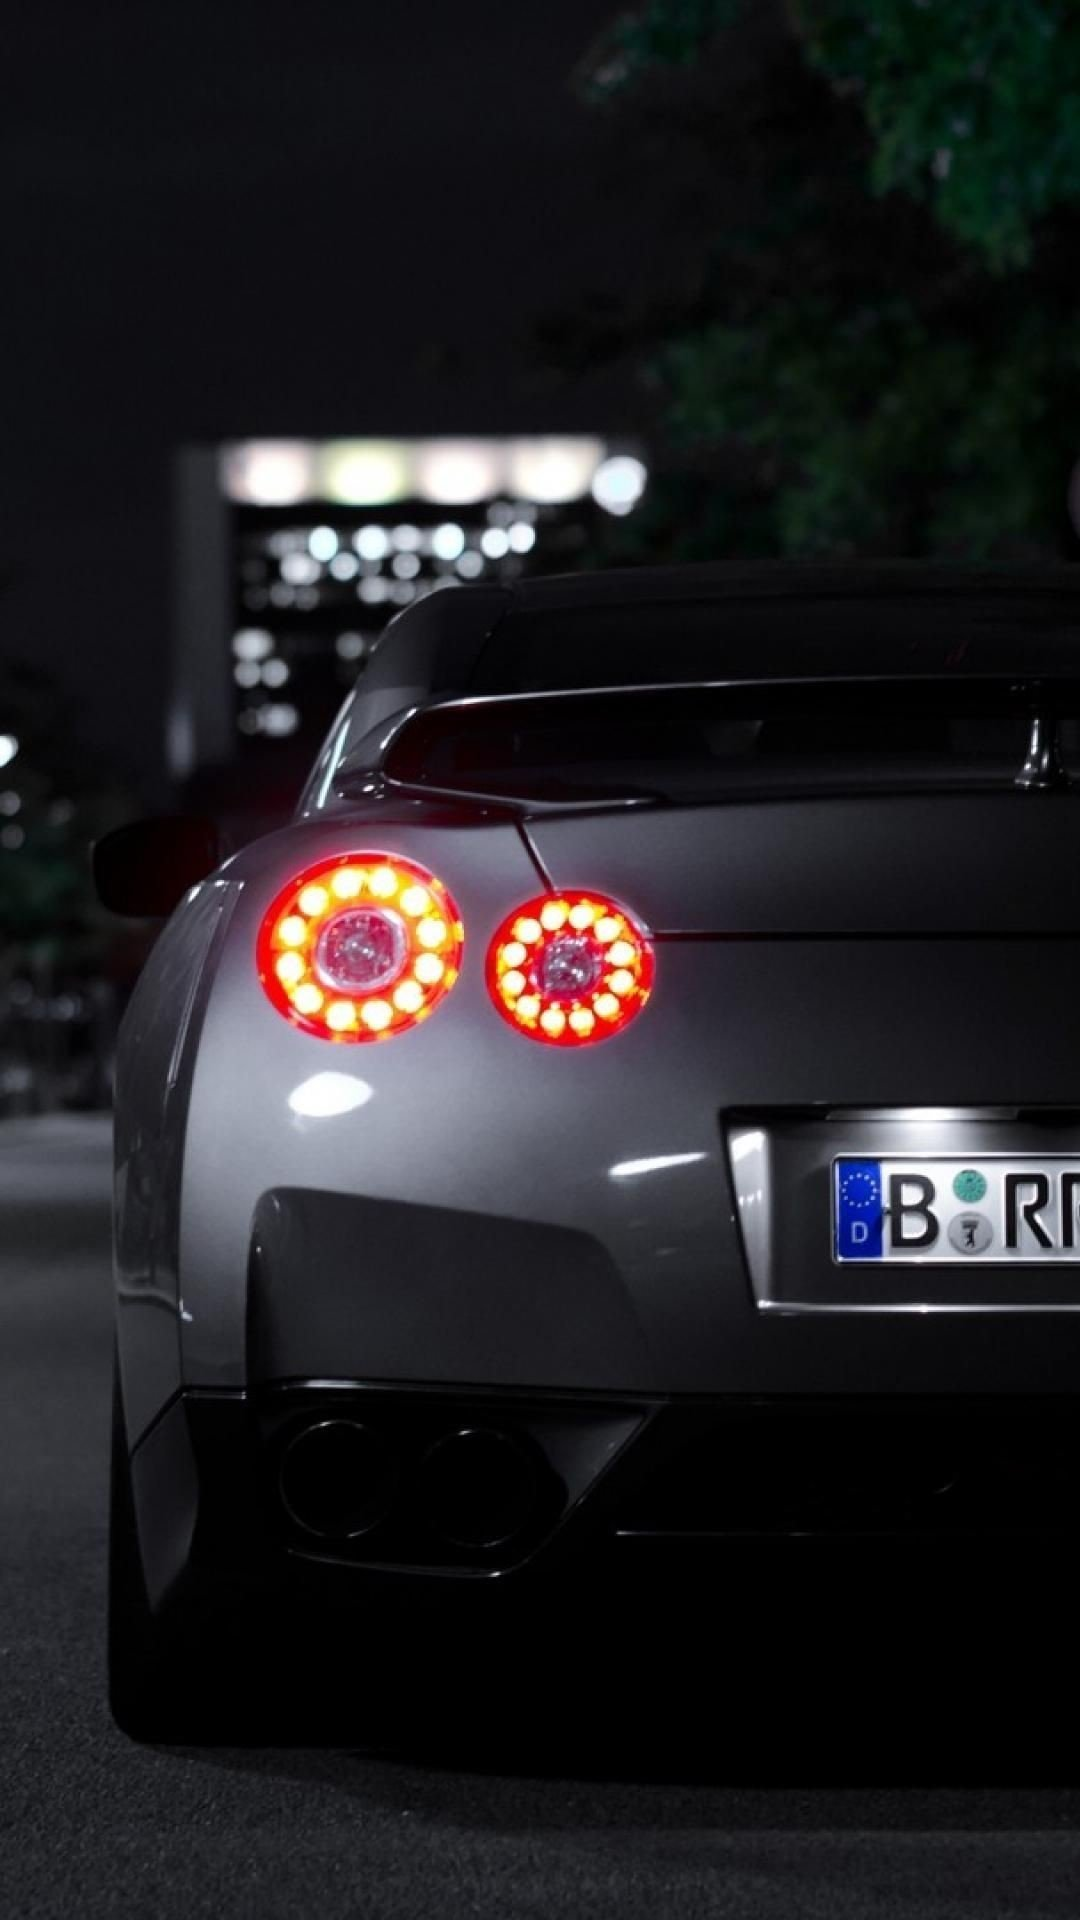 Nissan GTR iPhone 6 Wallpaper 79 images 1080x1920